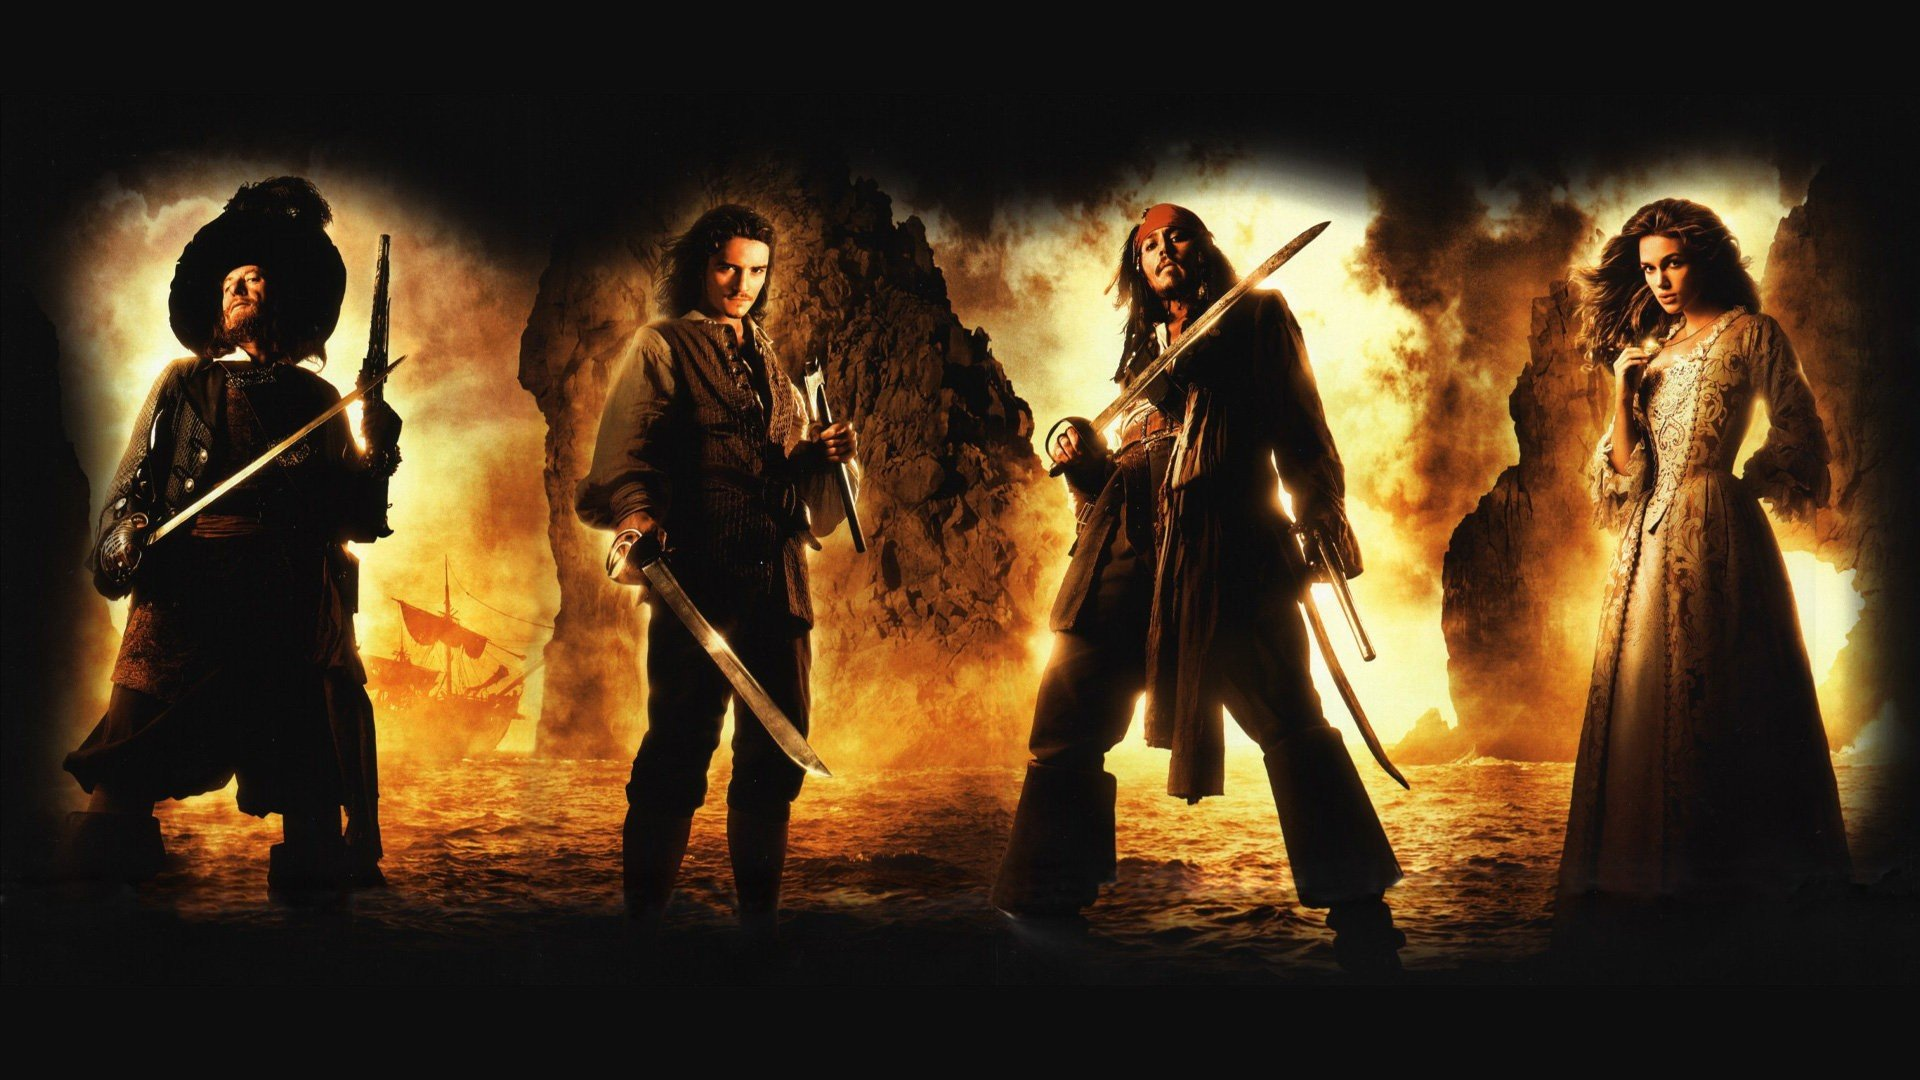 Pirates Of The Caribbean Wallpapers 1920x1080 Full Hd 1080p